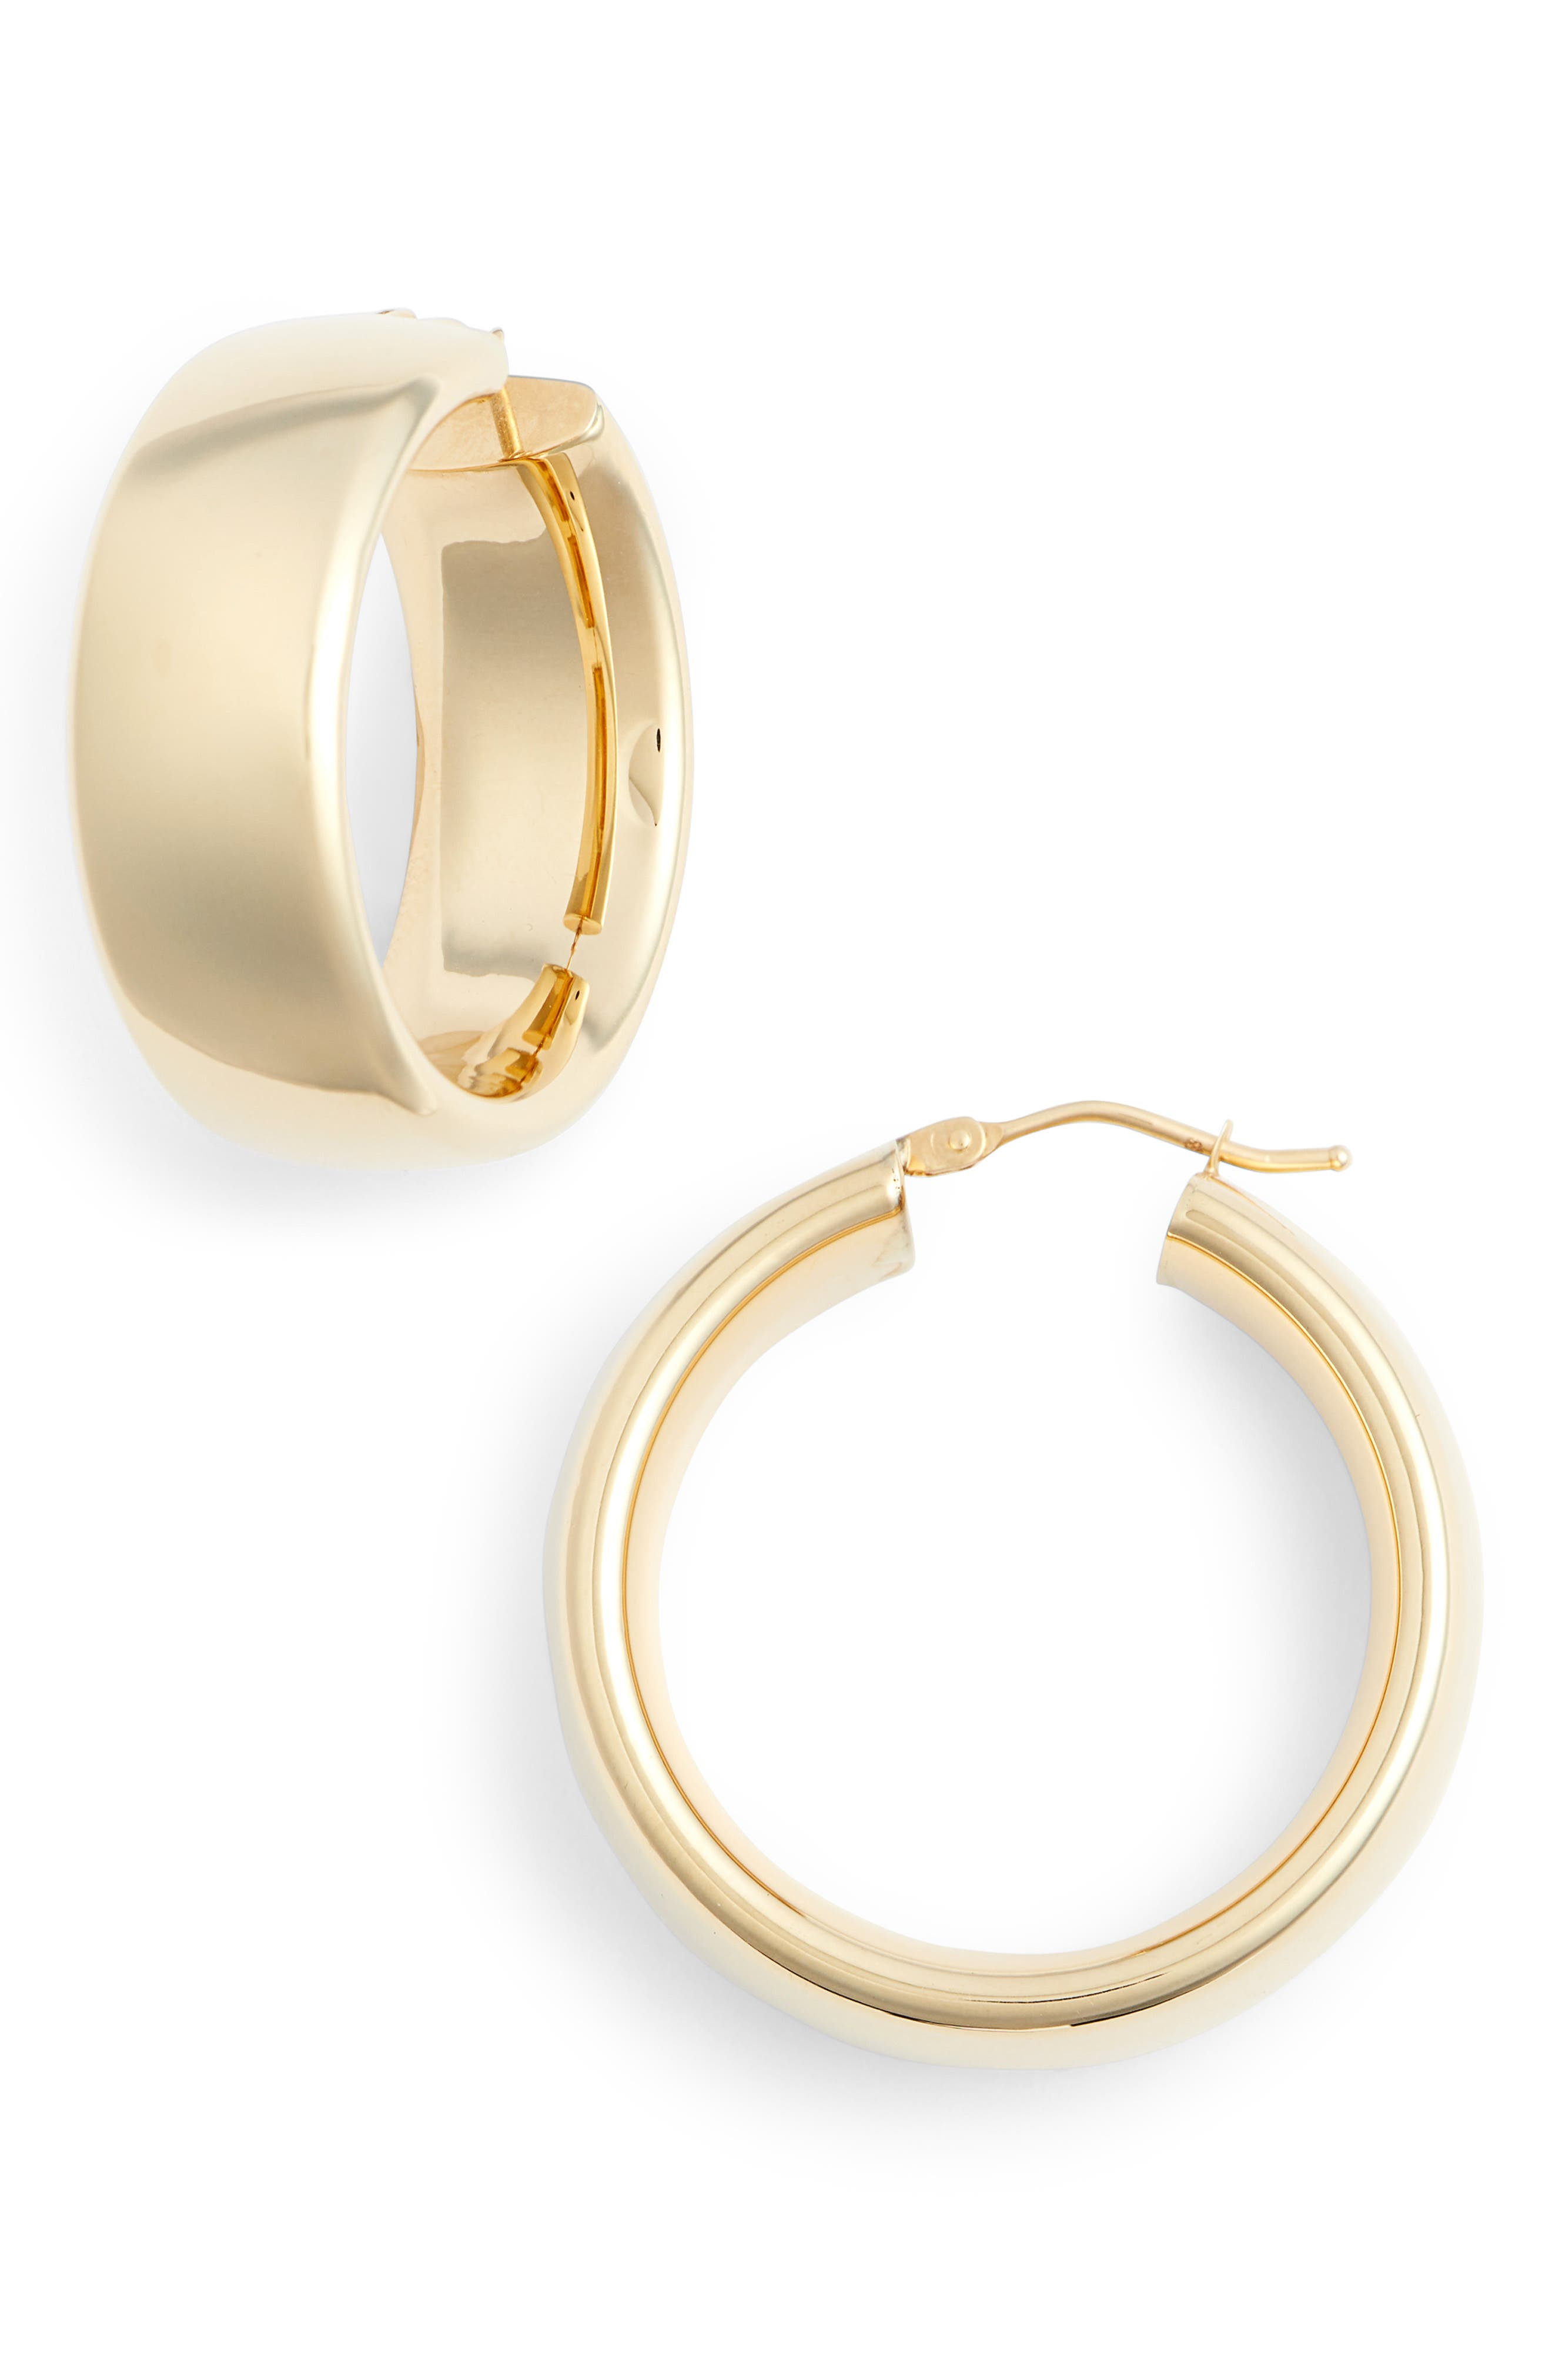 Wide Round Hoop Earrings,                             Main thumbnail 1, color,                             Yellow Gold